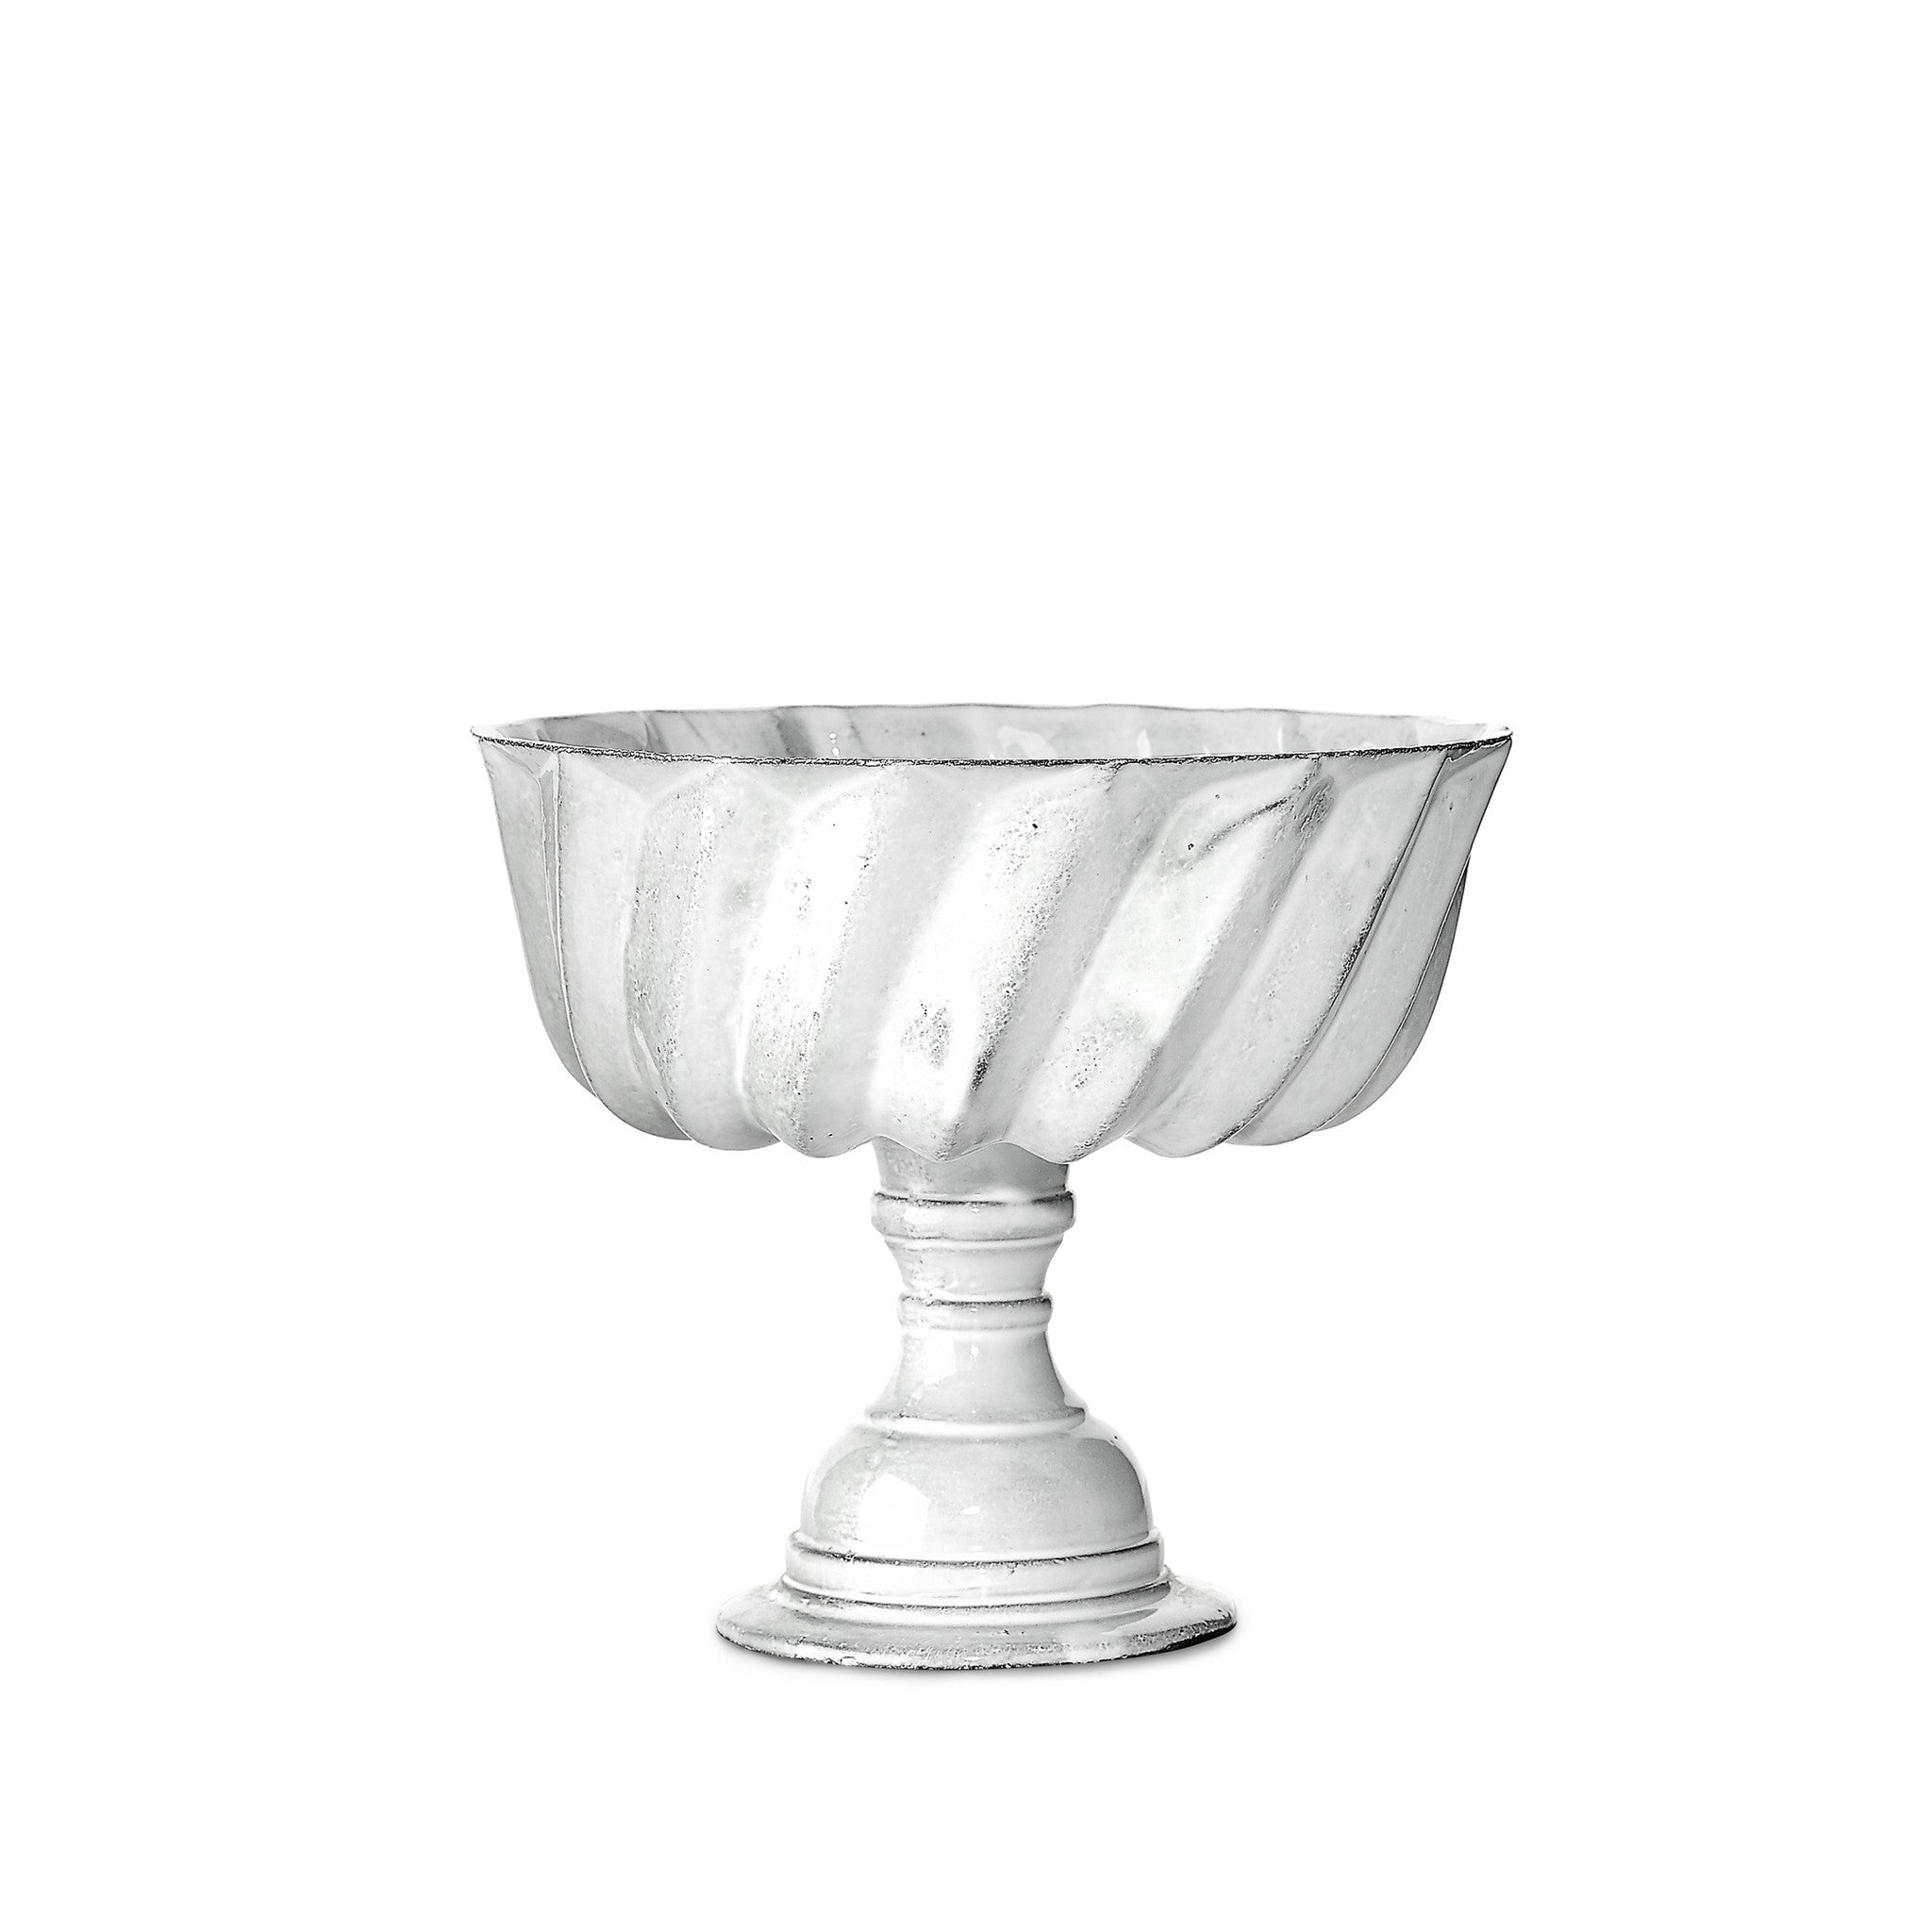 Tom Bowl on Stand, Large by Astier de Villatte